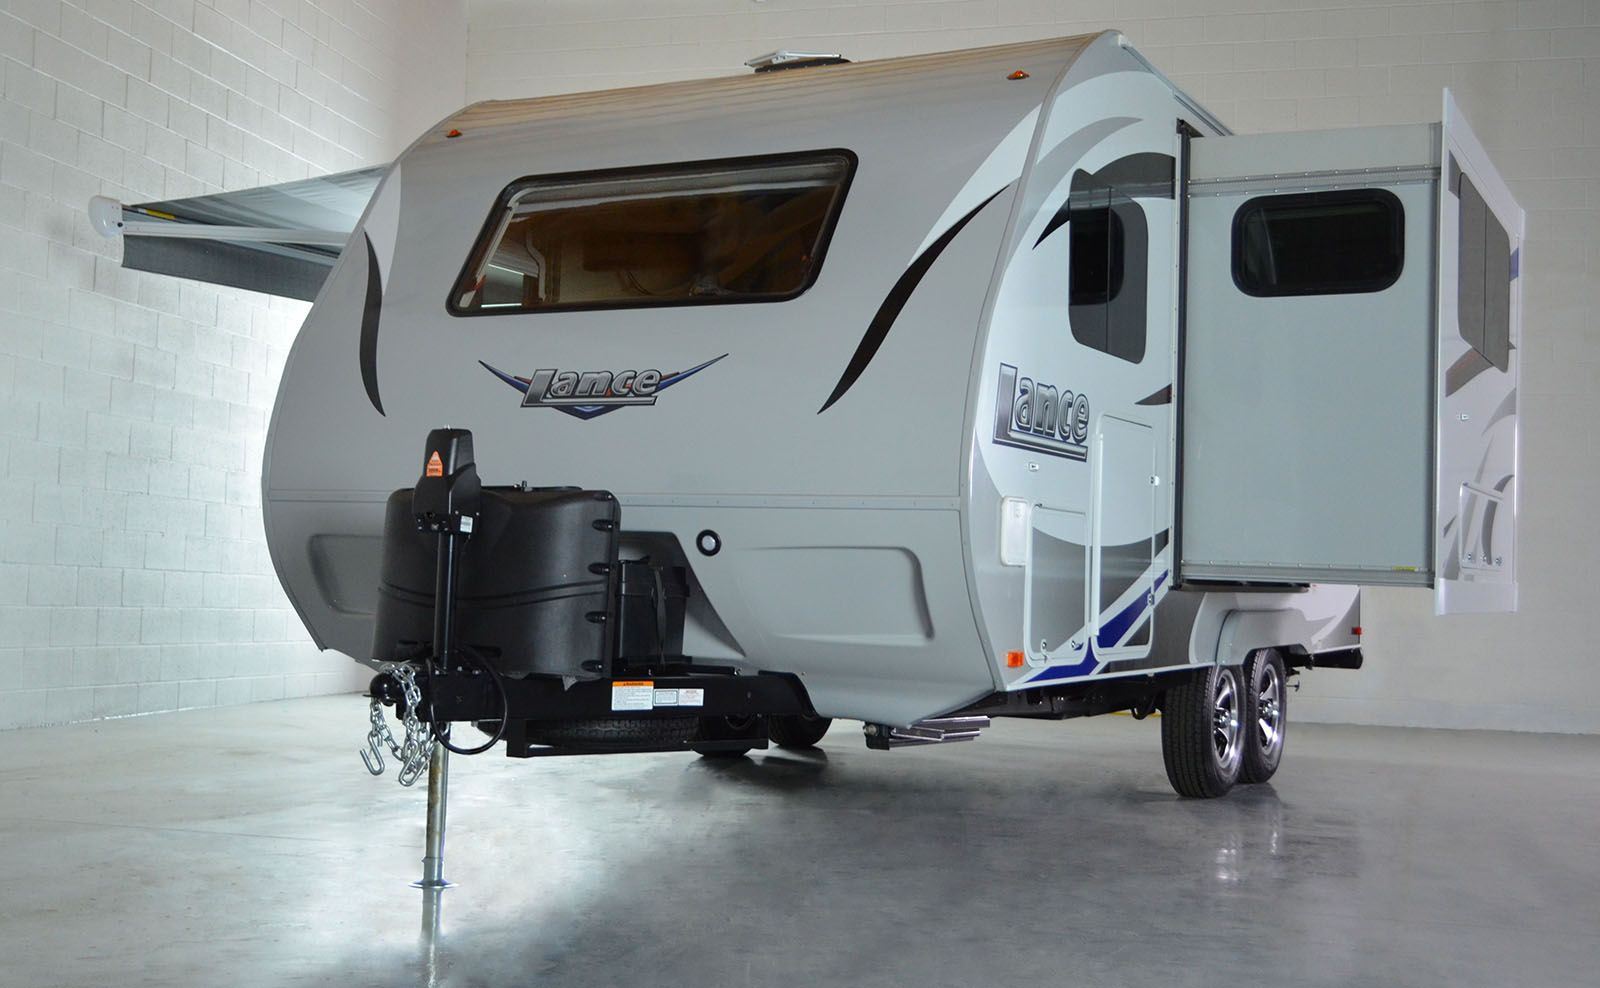 Lance 1685 Travel Trailer - If you're looking for more ...